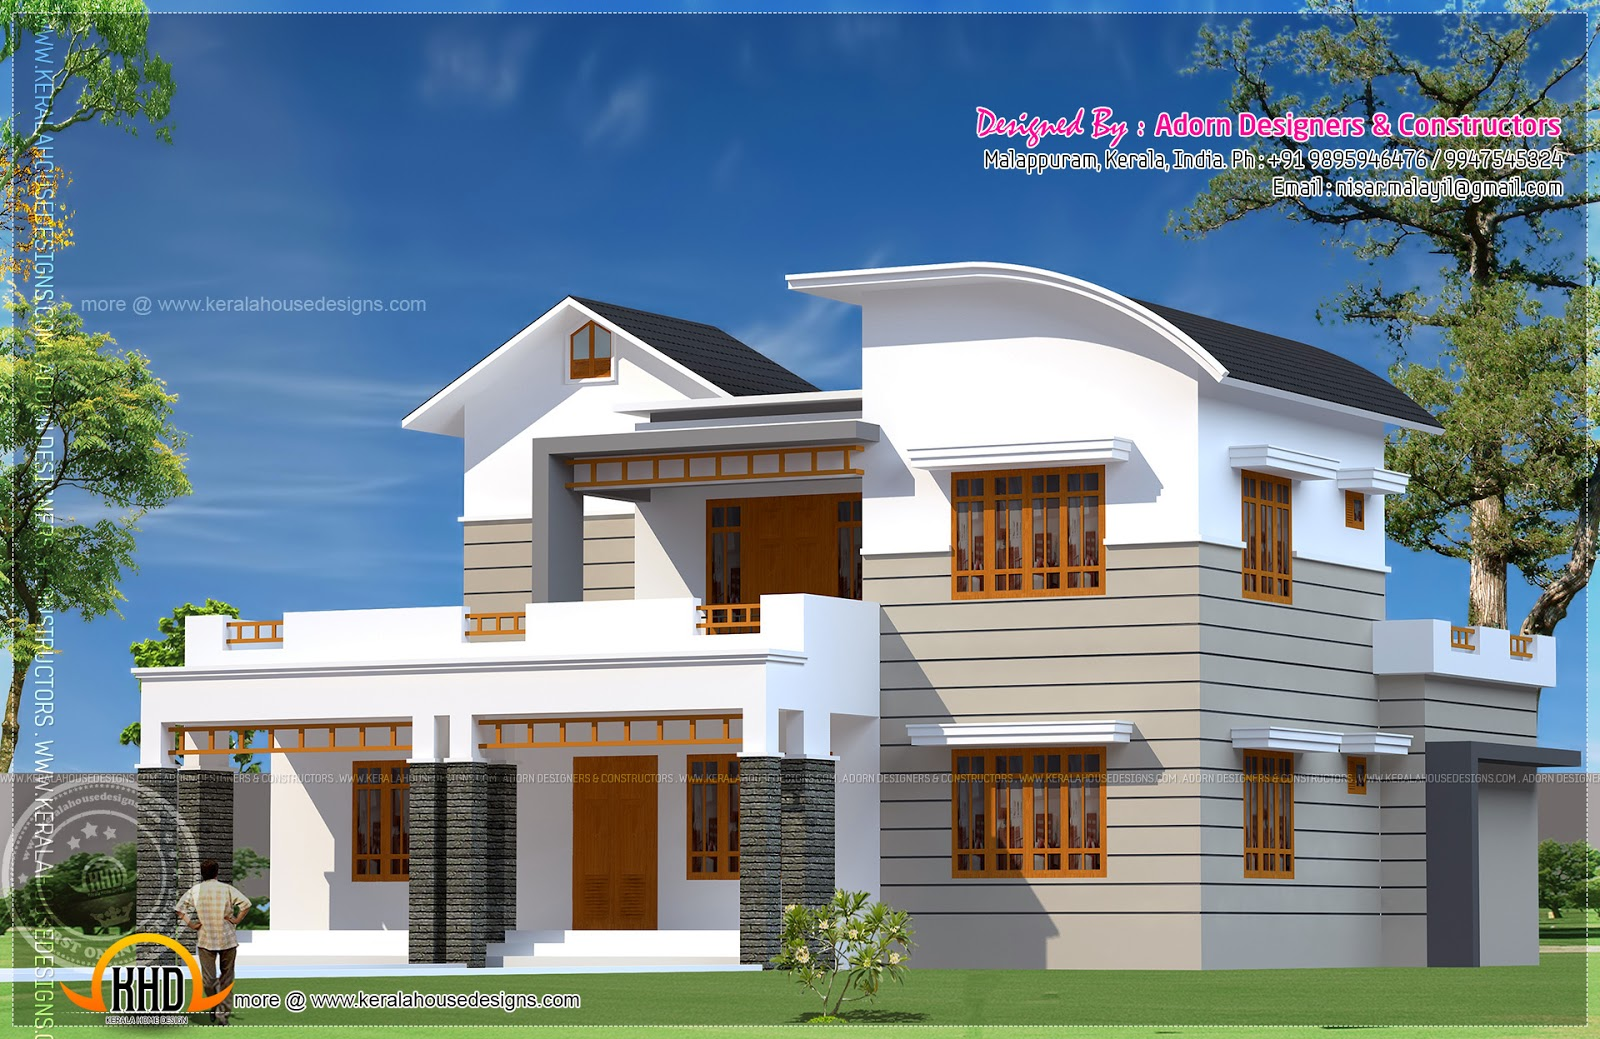 5 Bedroom Home Plans Kerala